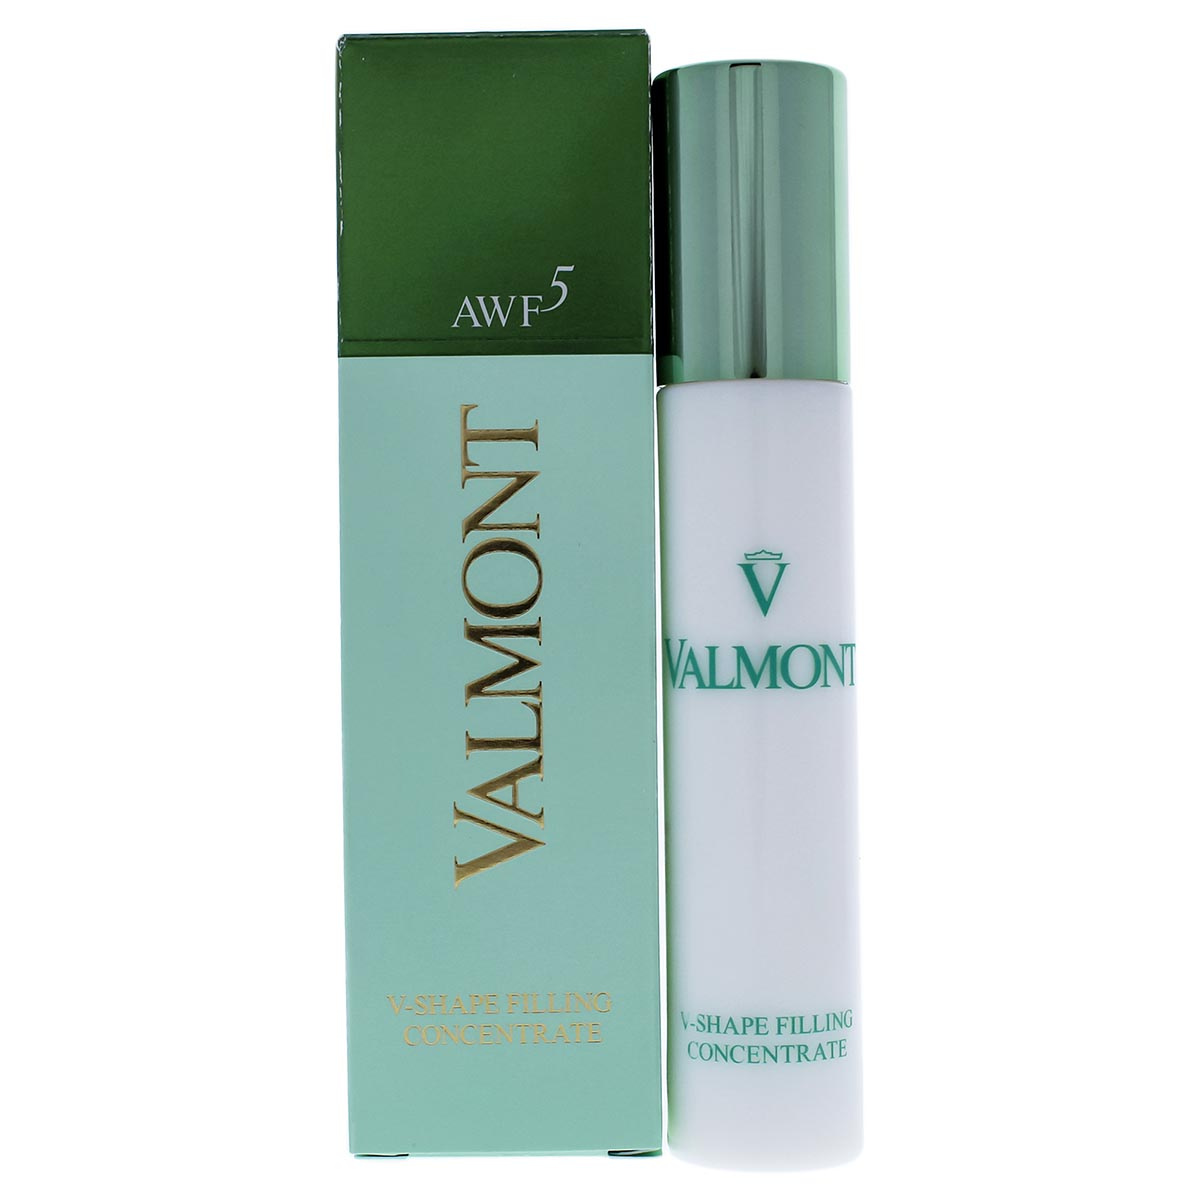 Valmont awf5 v shape filling concentrate 30ml